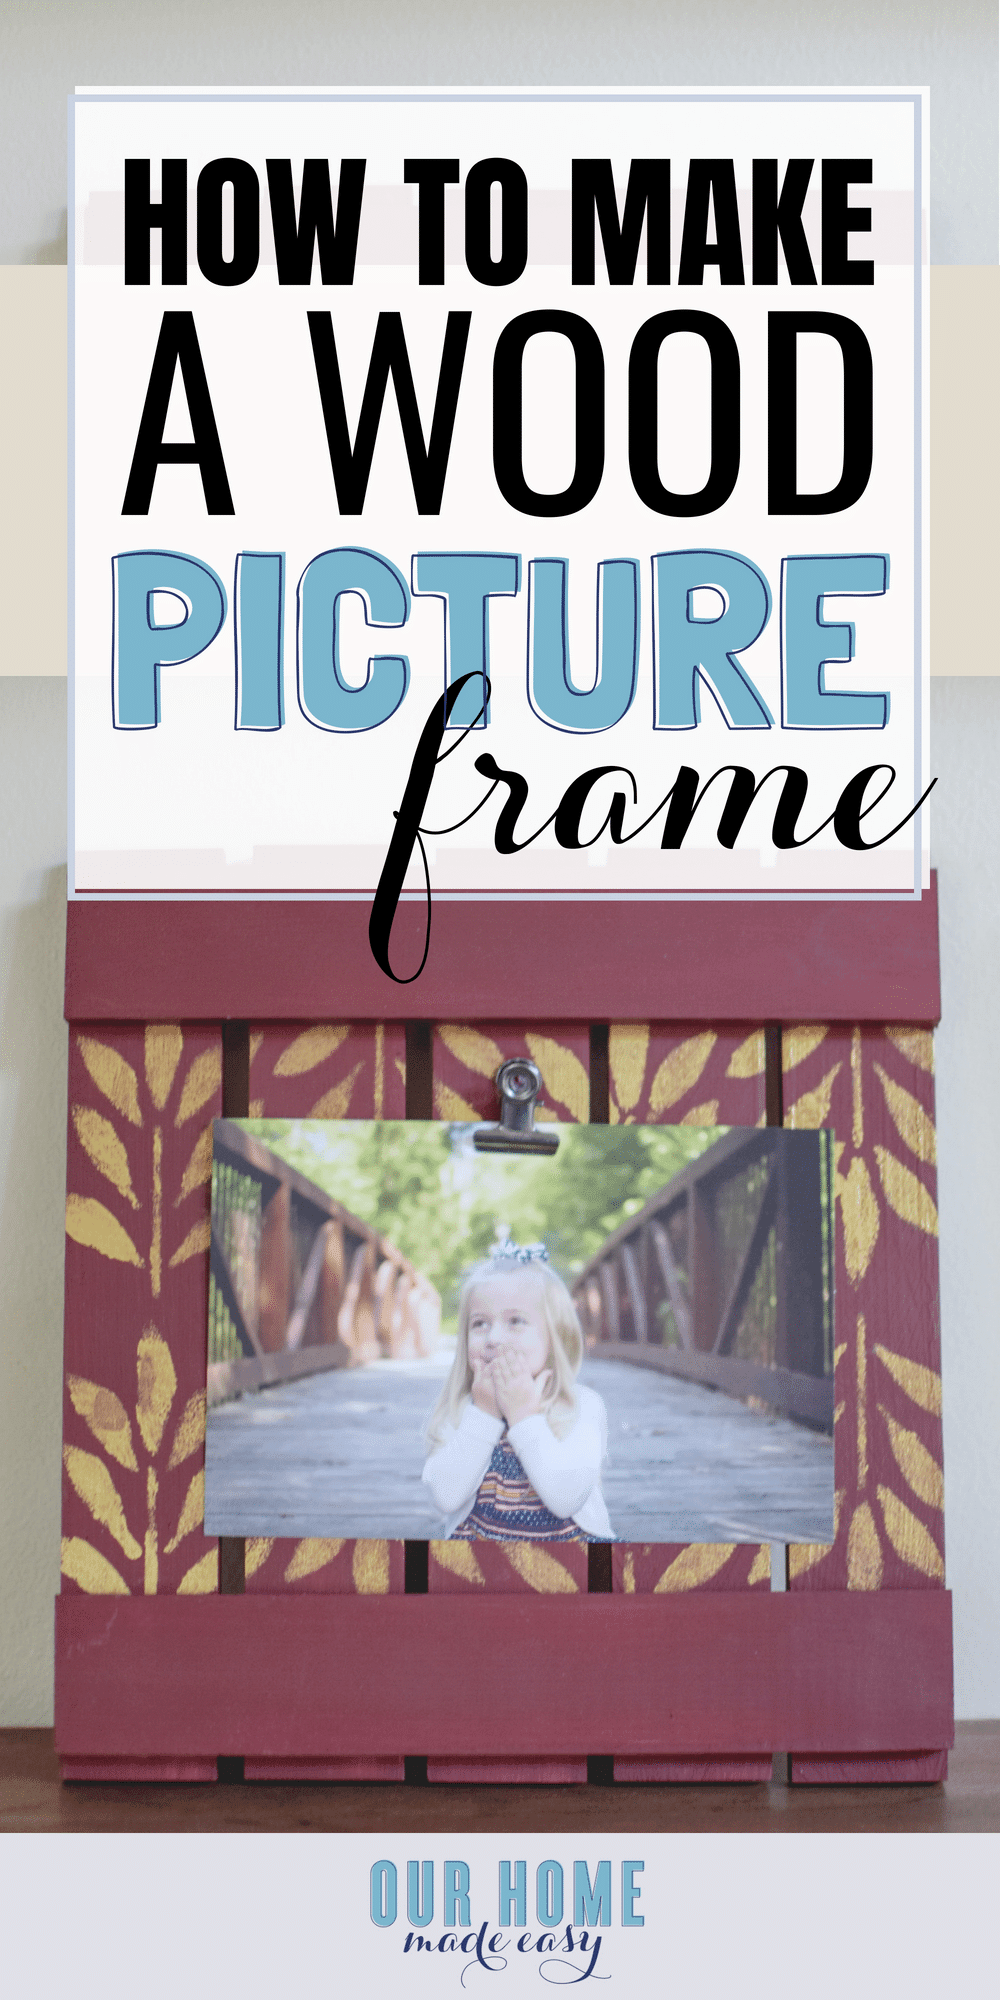 Make this easy wood picture frame with almost no tools! Decorate it for any holiday or decor. Click to follow the tutorial! #diy #pictureframe #decor